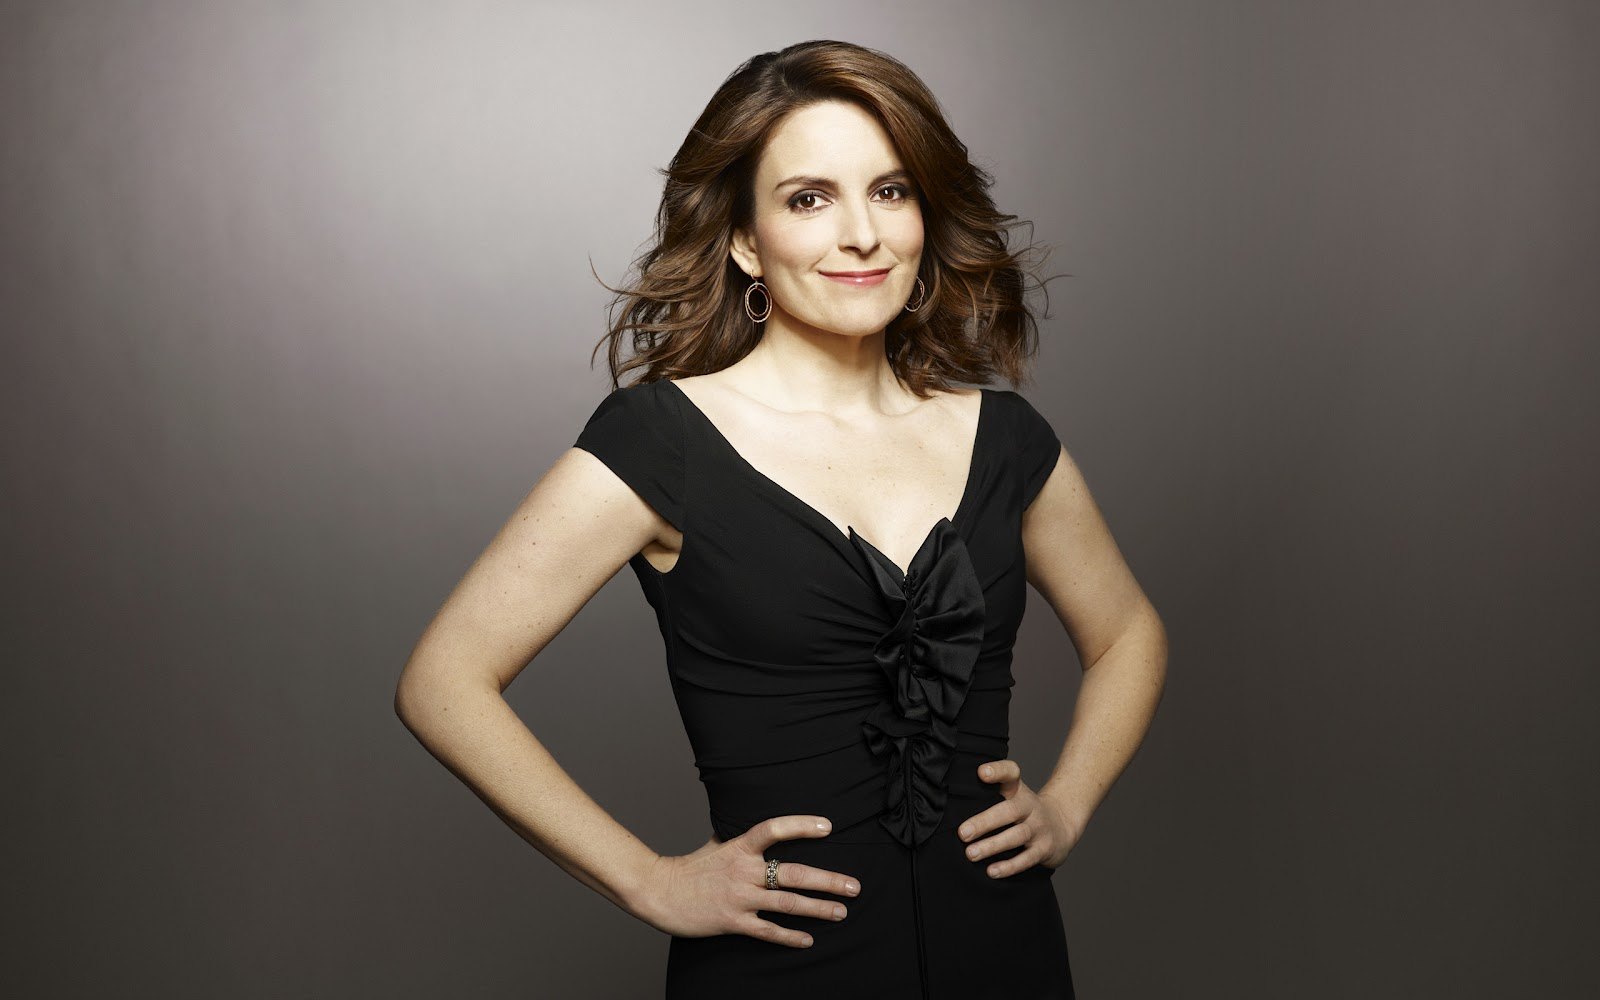 Tina Fey Unseen Spicy Photos Tina Fey Hot Cleavage Images Tina Fey